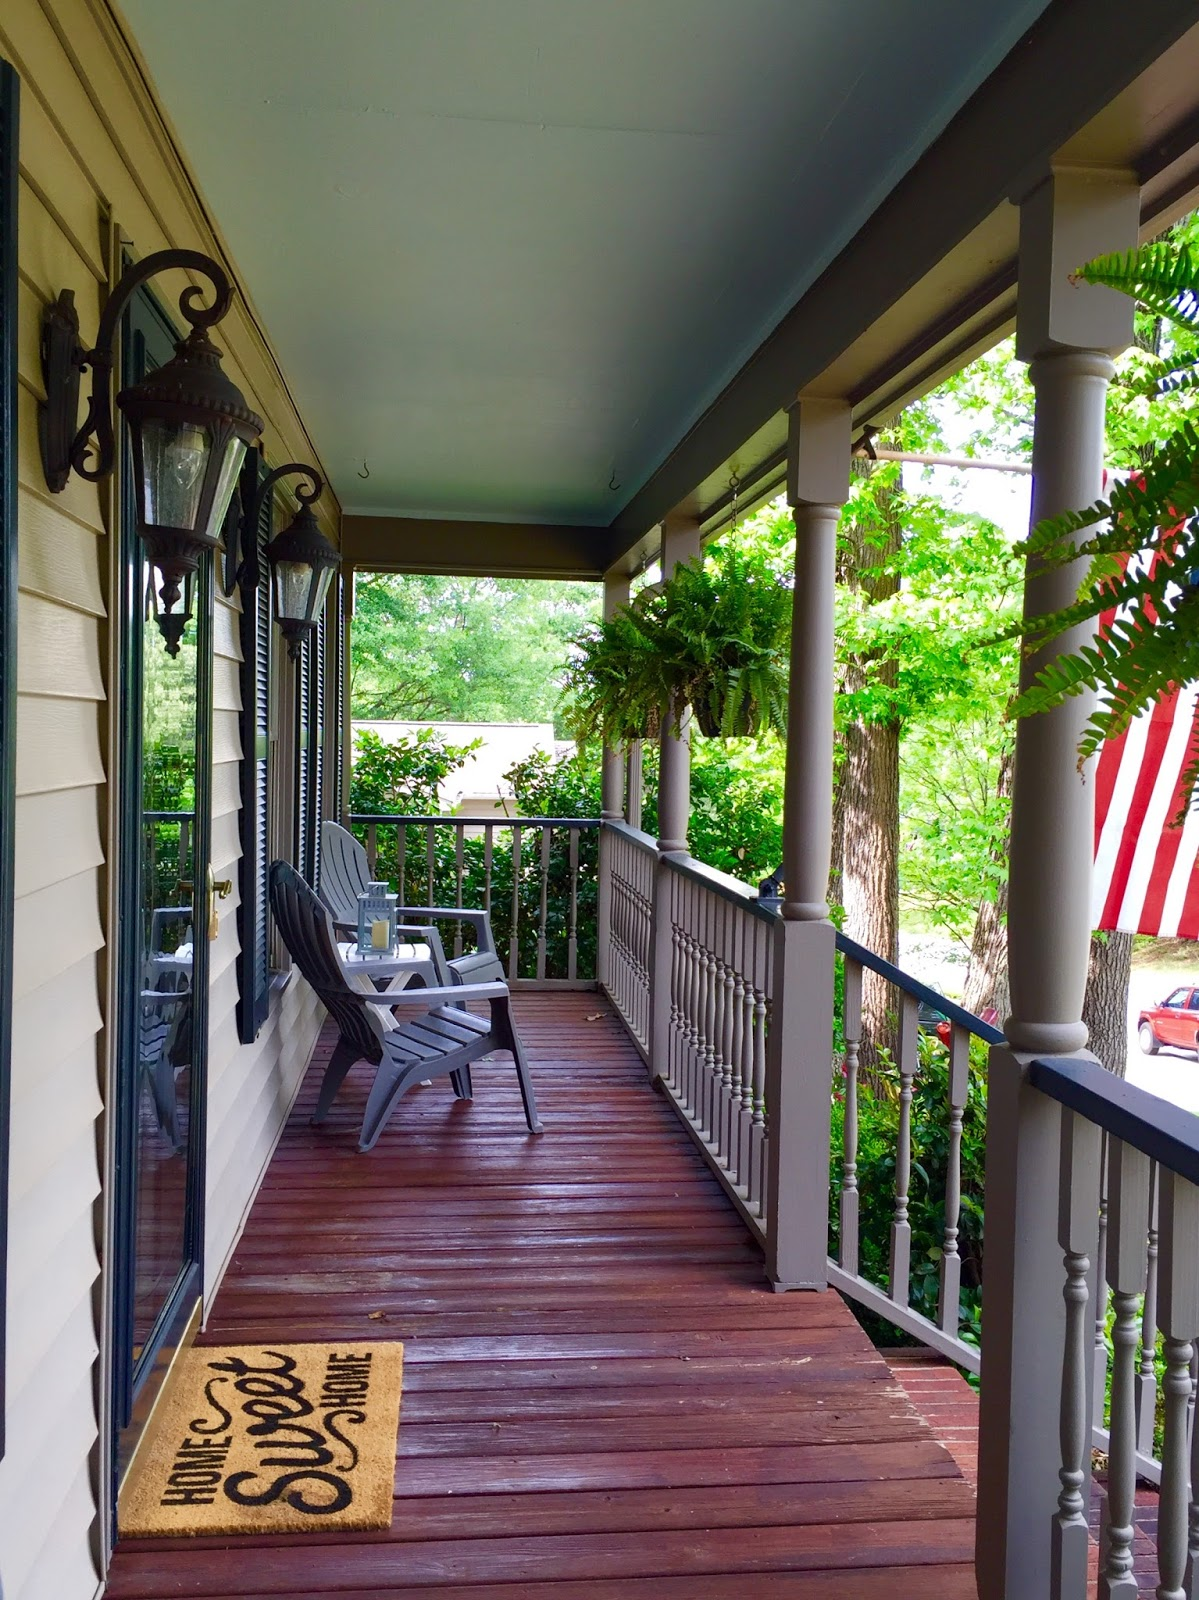 Adding a balcony to a house - Not Much Has Been Done Except For Adding Some Boston Ferns Adirondacks Tables And Lanterns